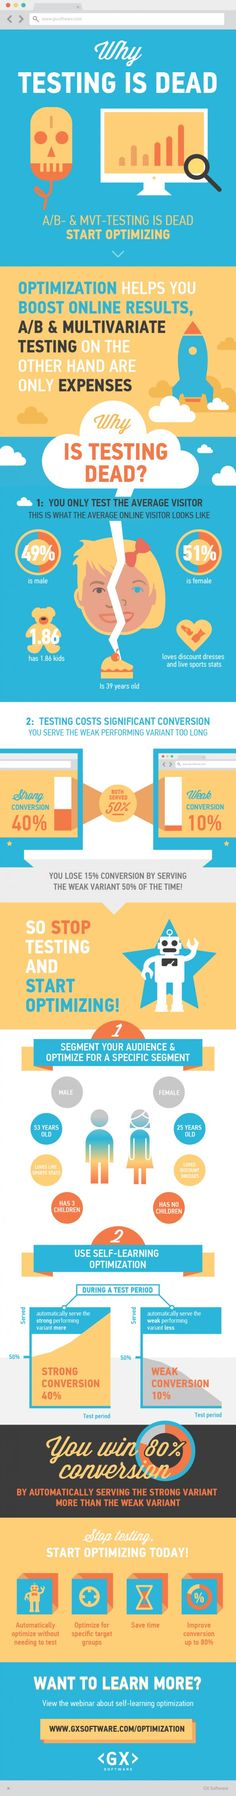 Stop #testing start #optimizing #online #marketing #facts